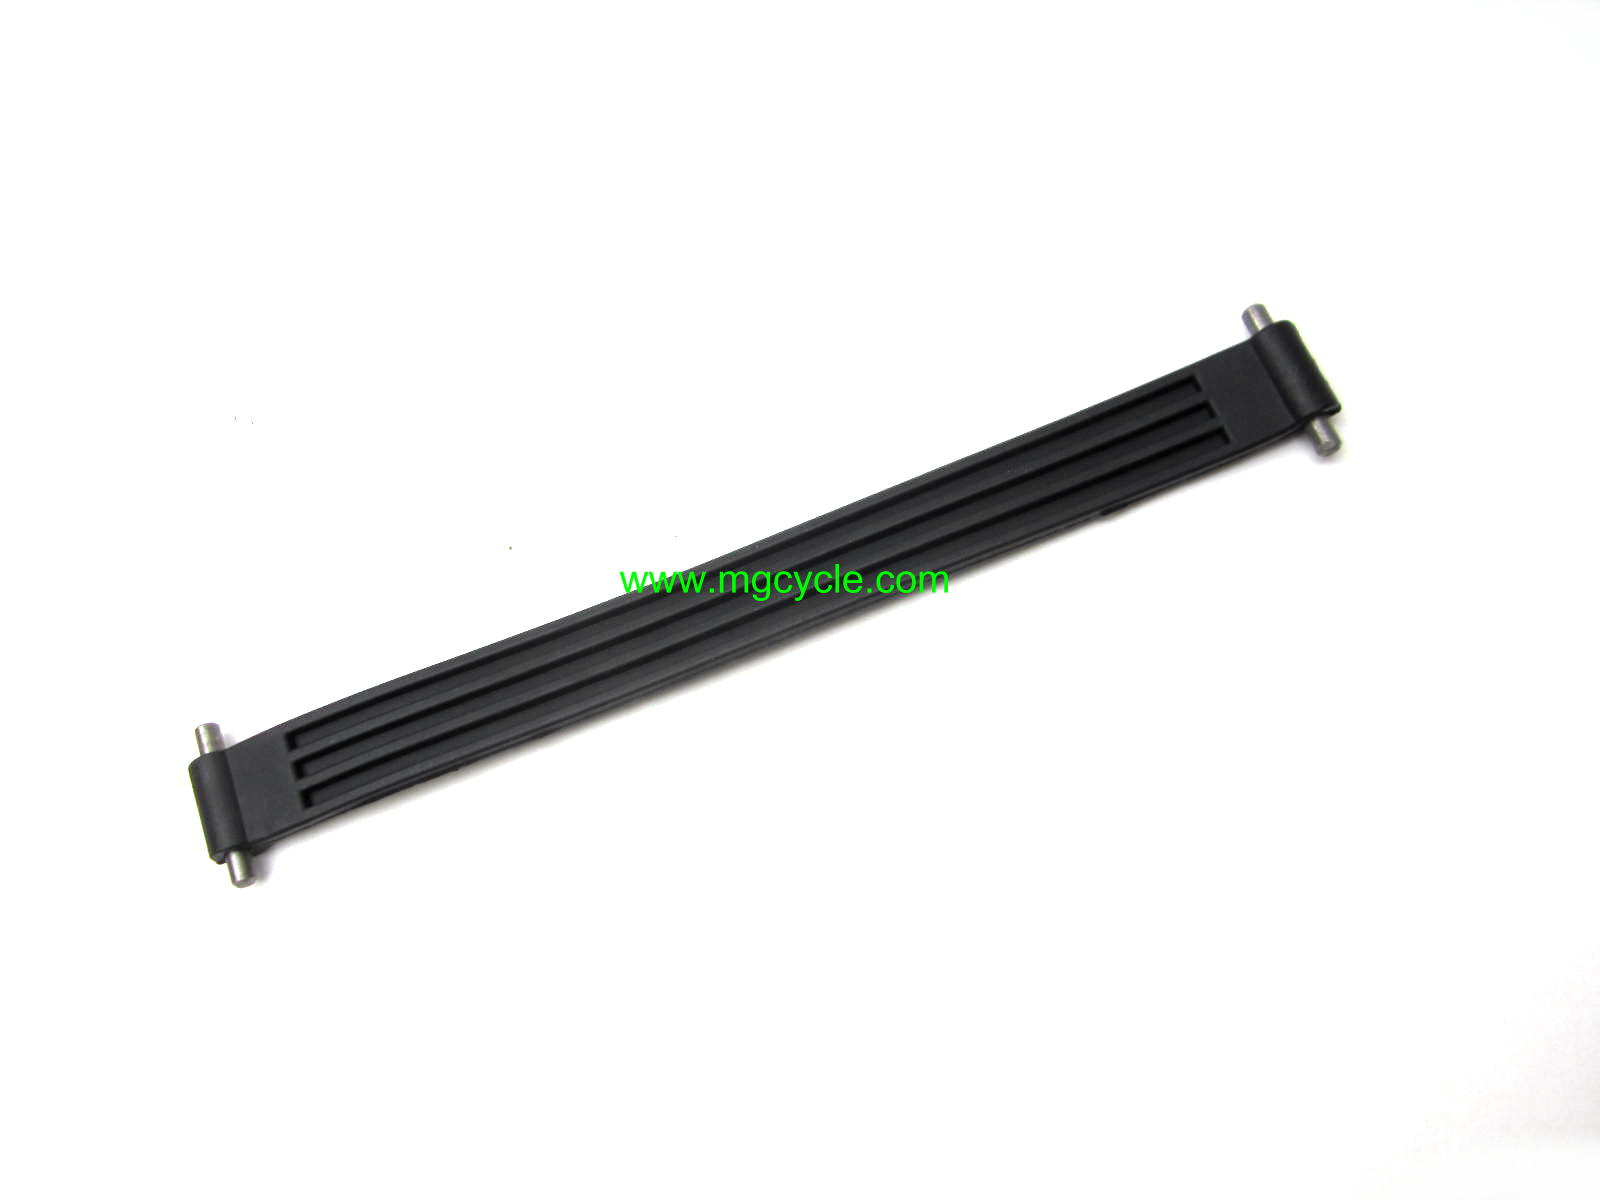 rubber battery strap for most Ducati bevel twins ~280mm long